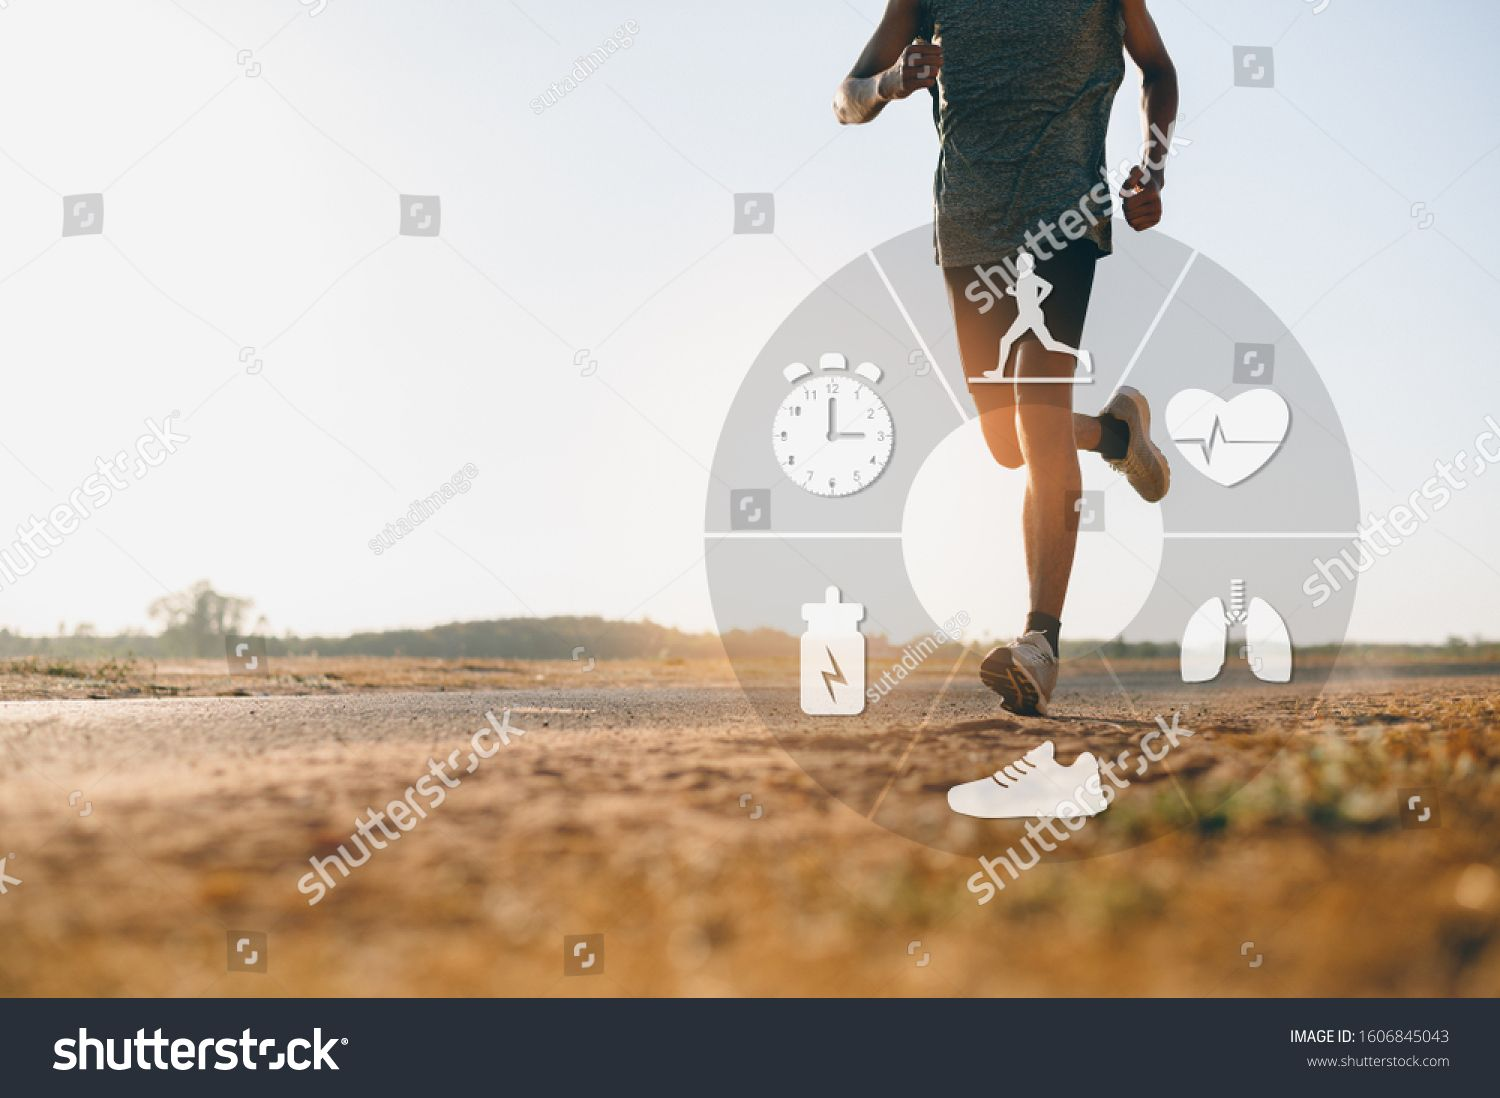 Runner Man Running For Healthy Concept Of The Technology To Check Health While Exercising Ad Ad Running Health Running Healthy Man Running Stock Photos